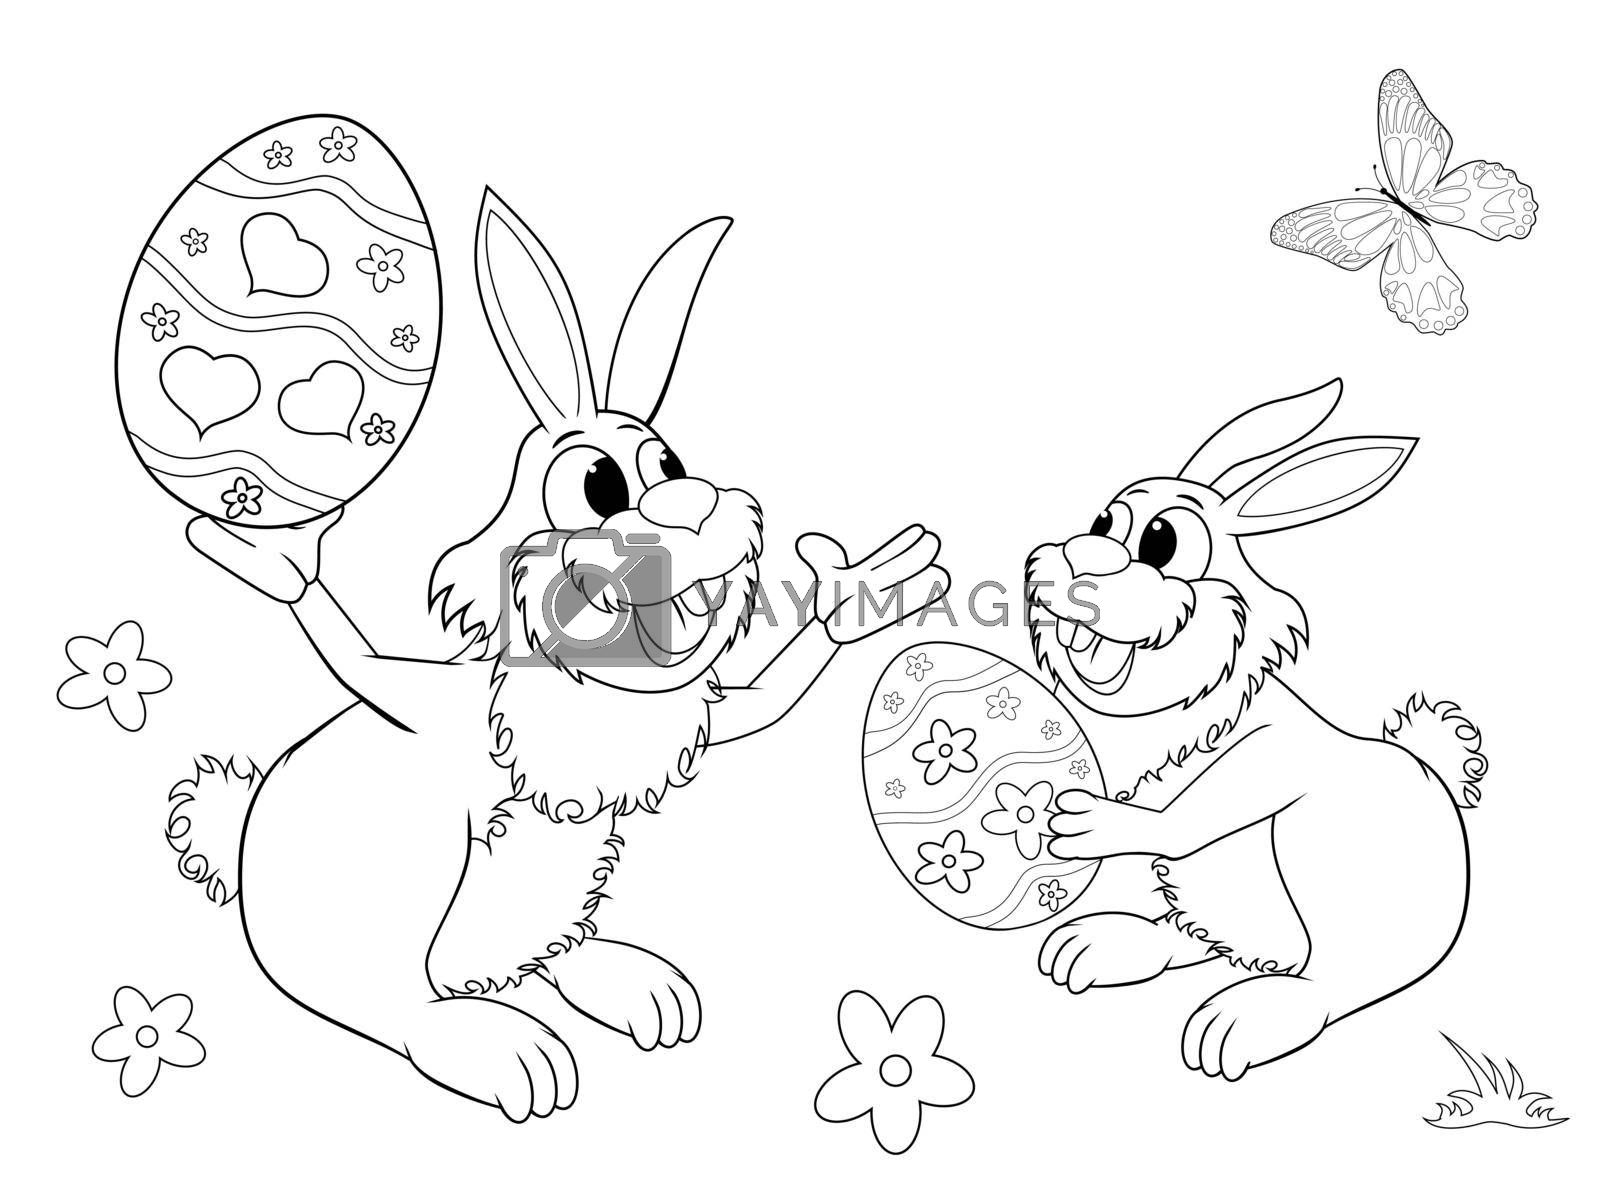 Royalty free image of Easter bunnies sketch for coloring by liolle